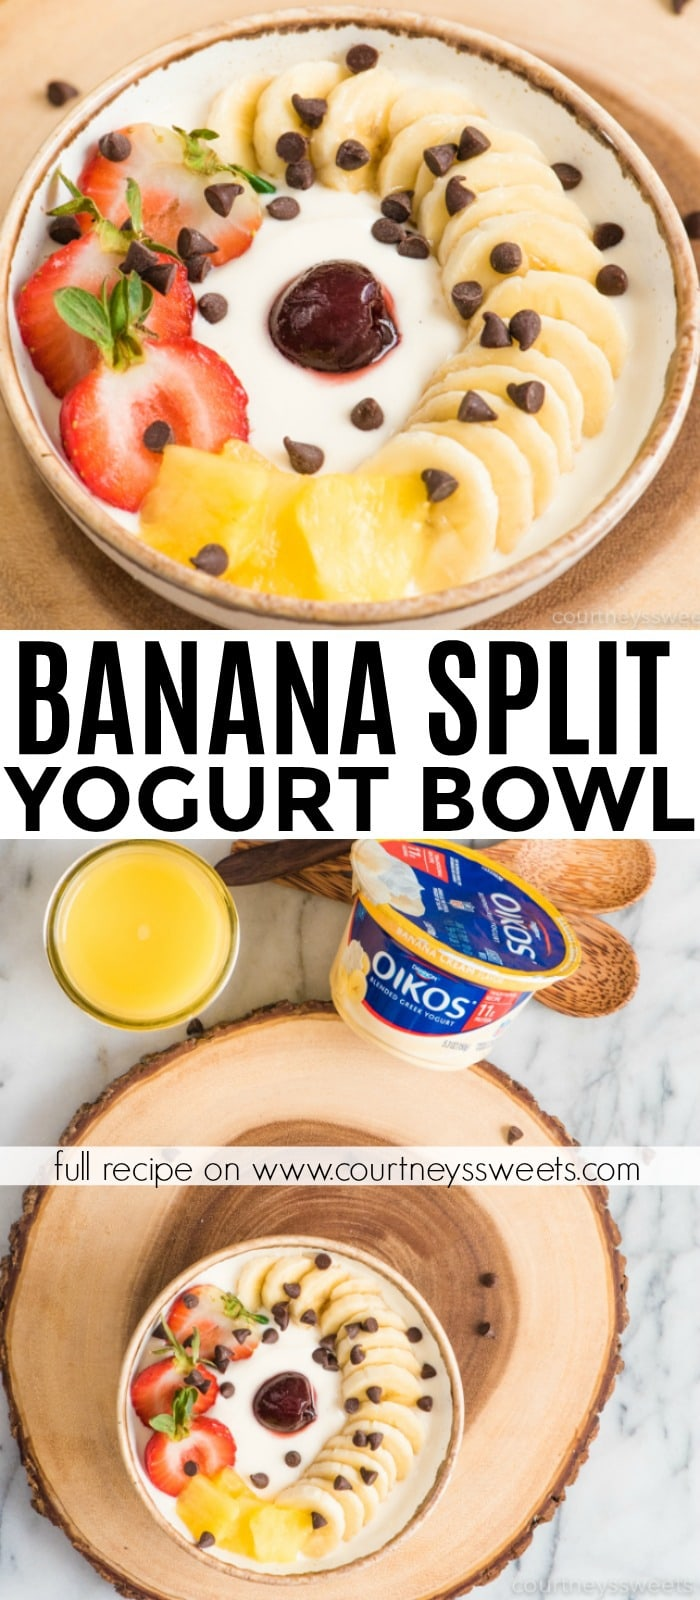 banana split yogurt bowl - easy breakfast bowl